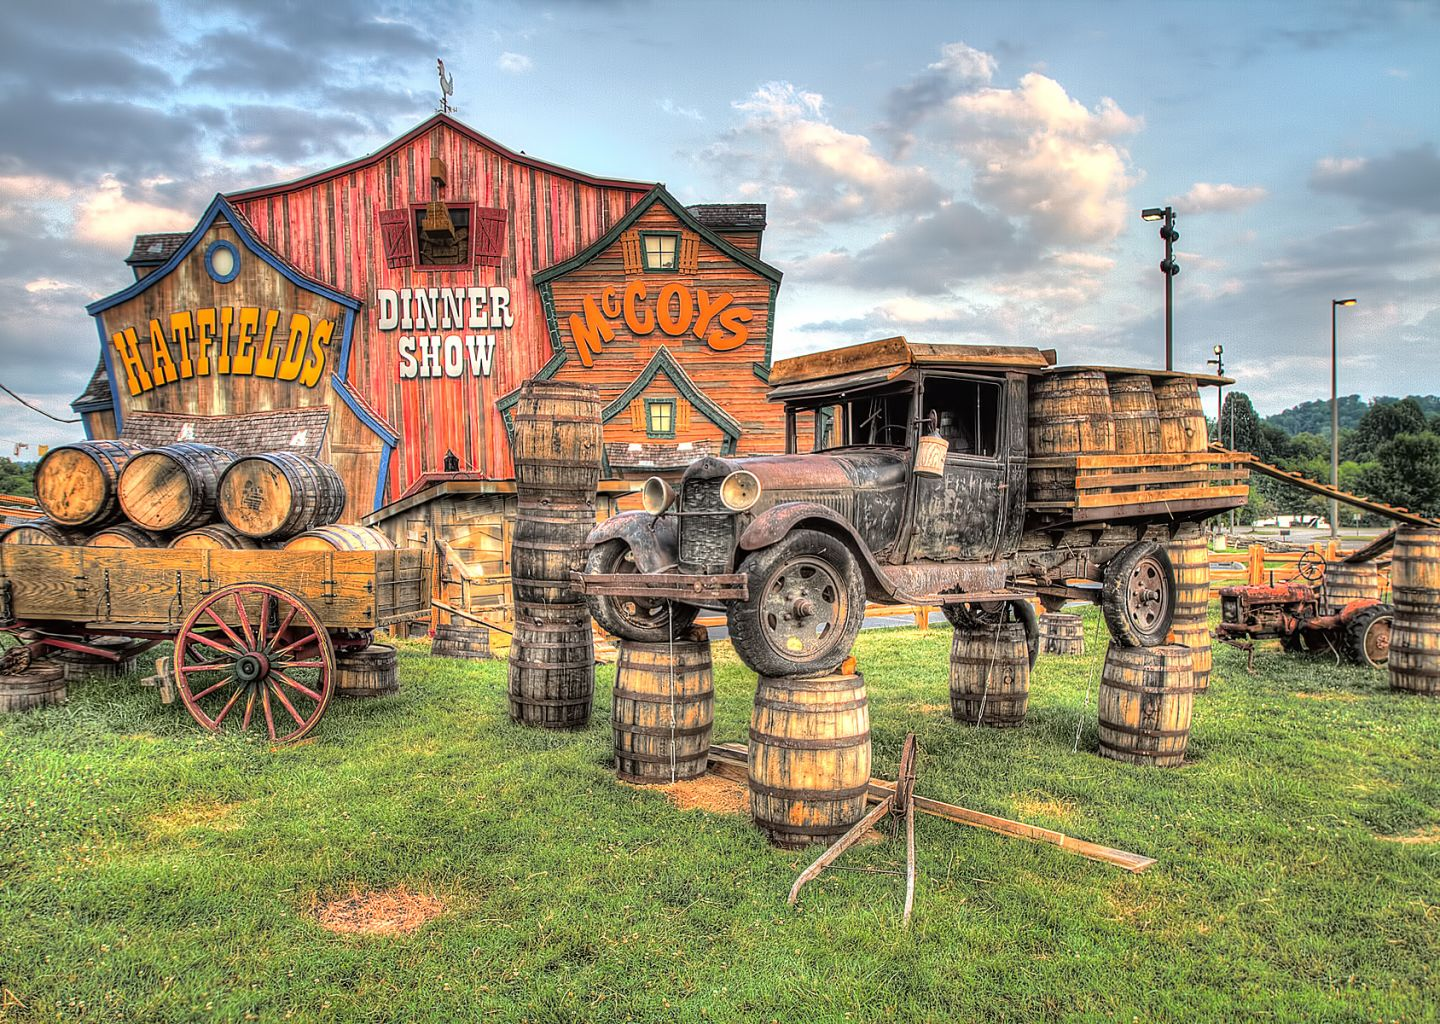 Hatfield and McCoy attractions in Pigeon Forge near Econo Lodge in TN